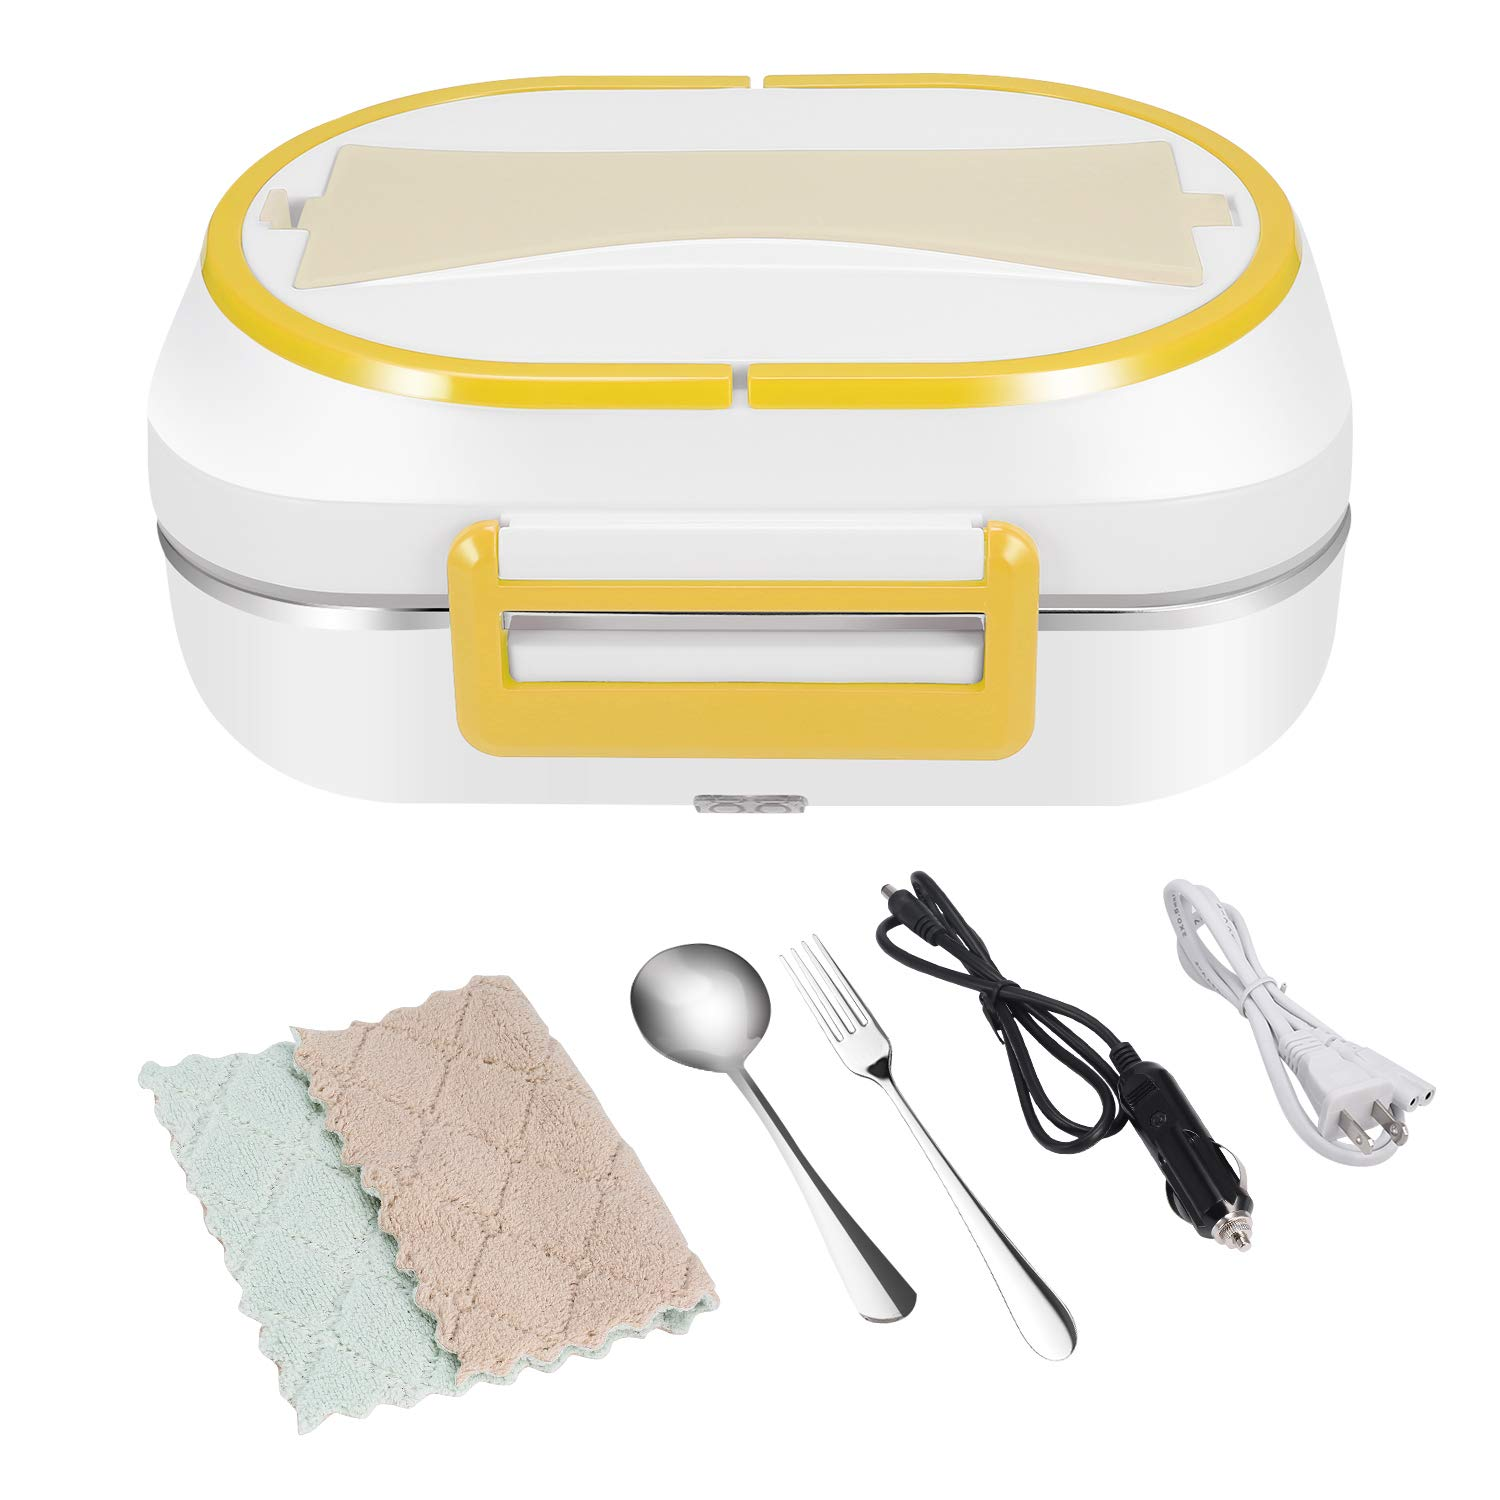 HAIFORD Electric Lunch Box Food Heater Portable Food Warmer Bento Box with Removable 304 Stainless Steel Container - Food Grade Material, Car and Home Dual Use (Yellow) by HAIFORD